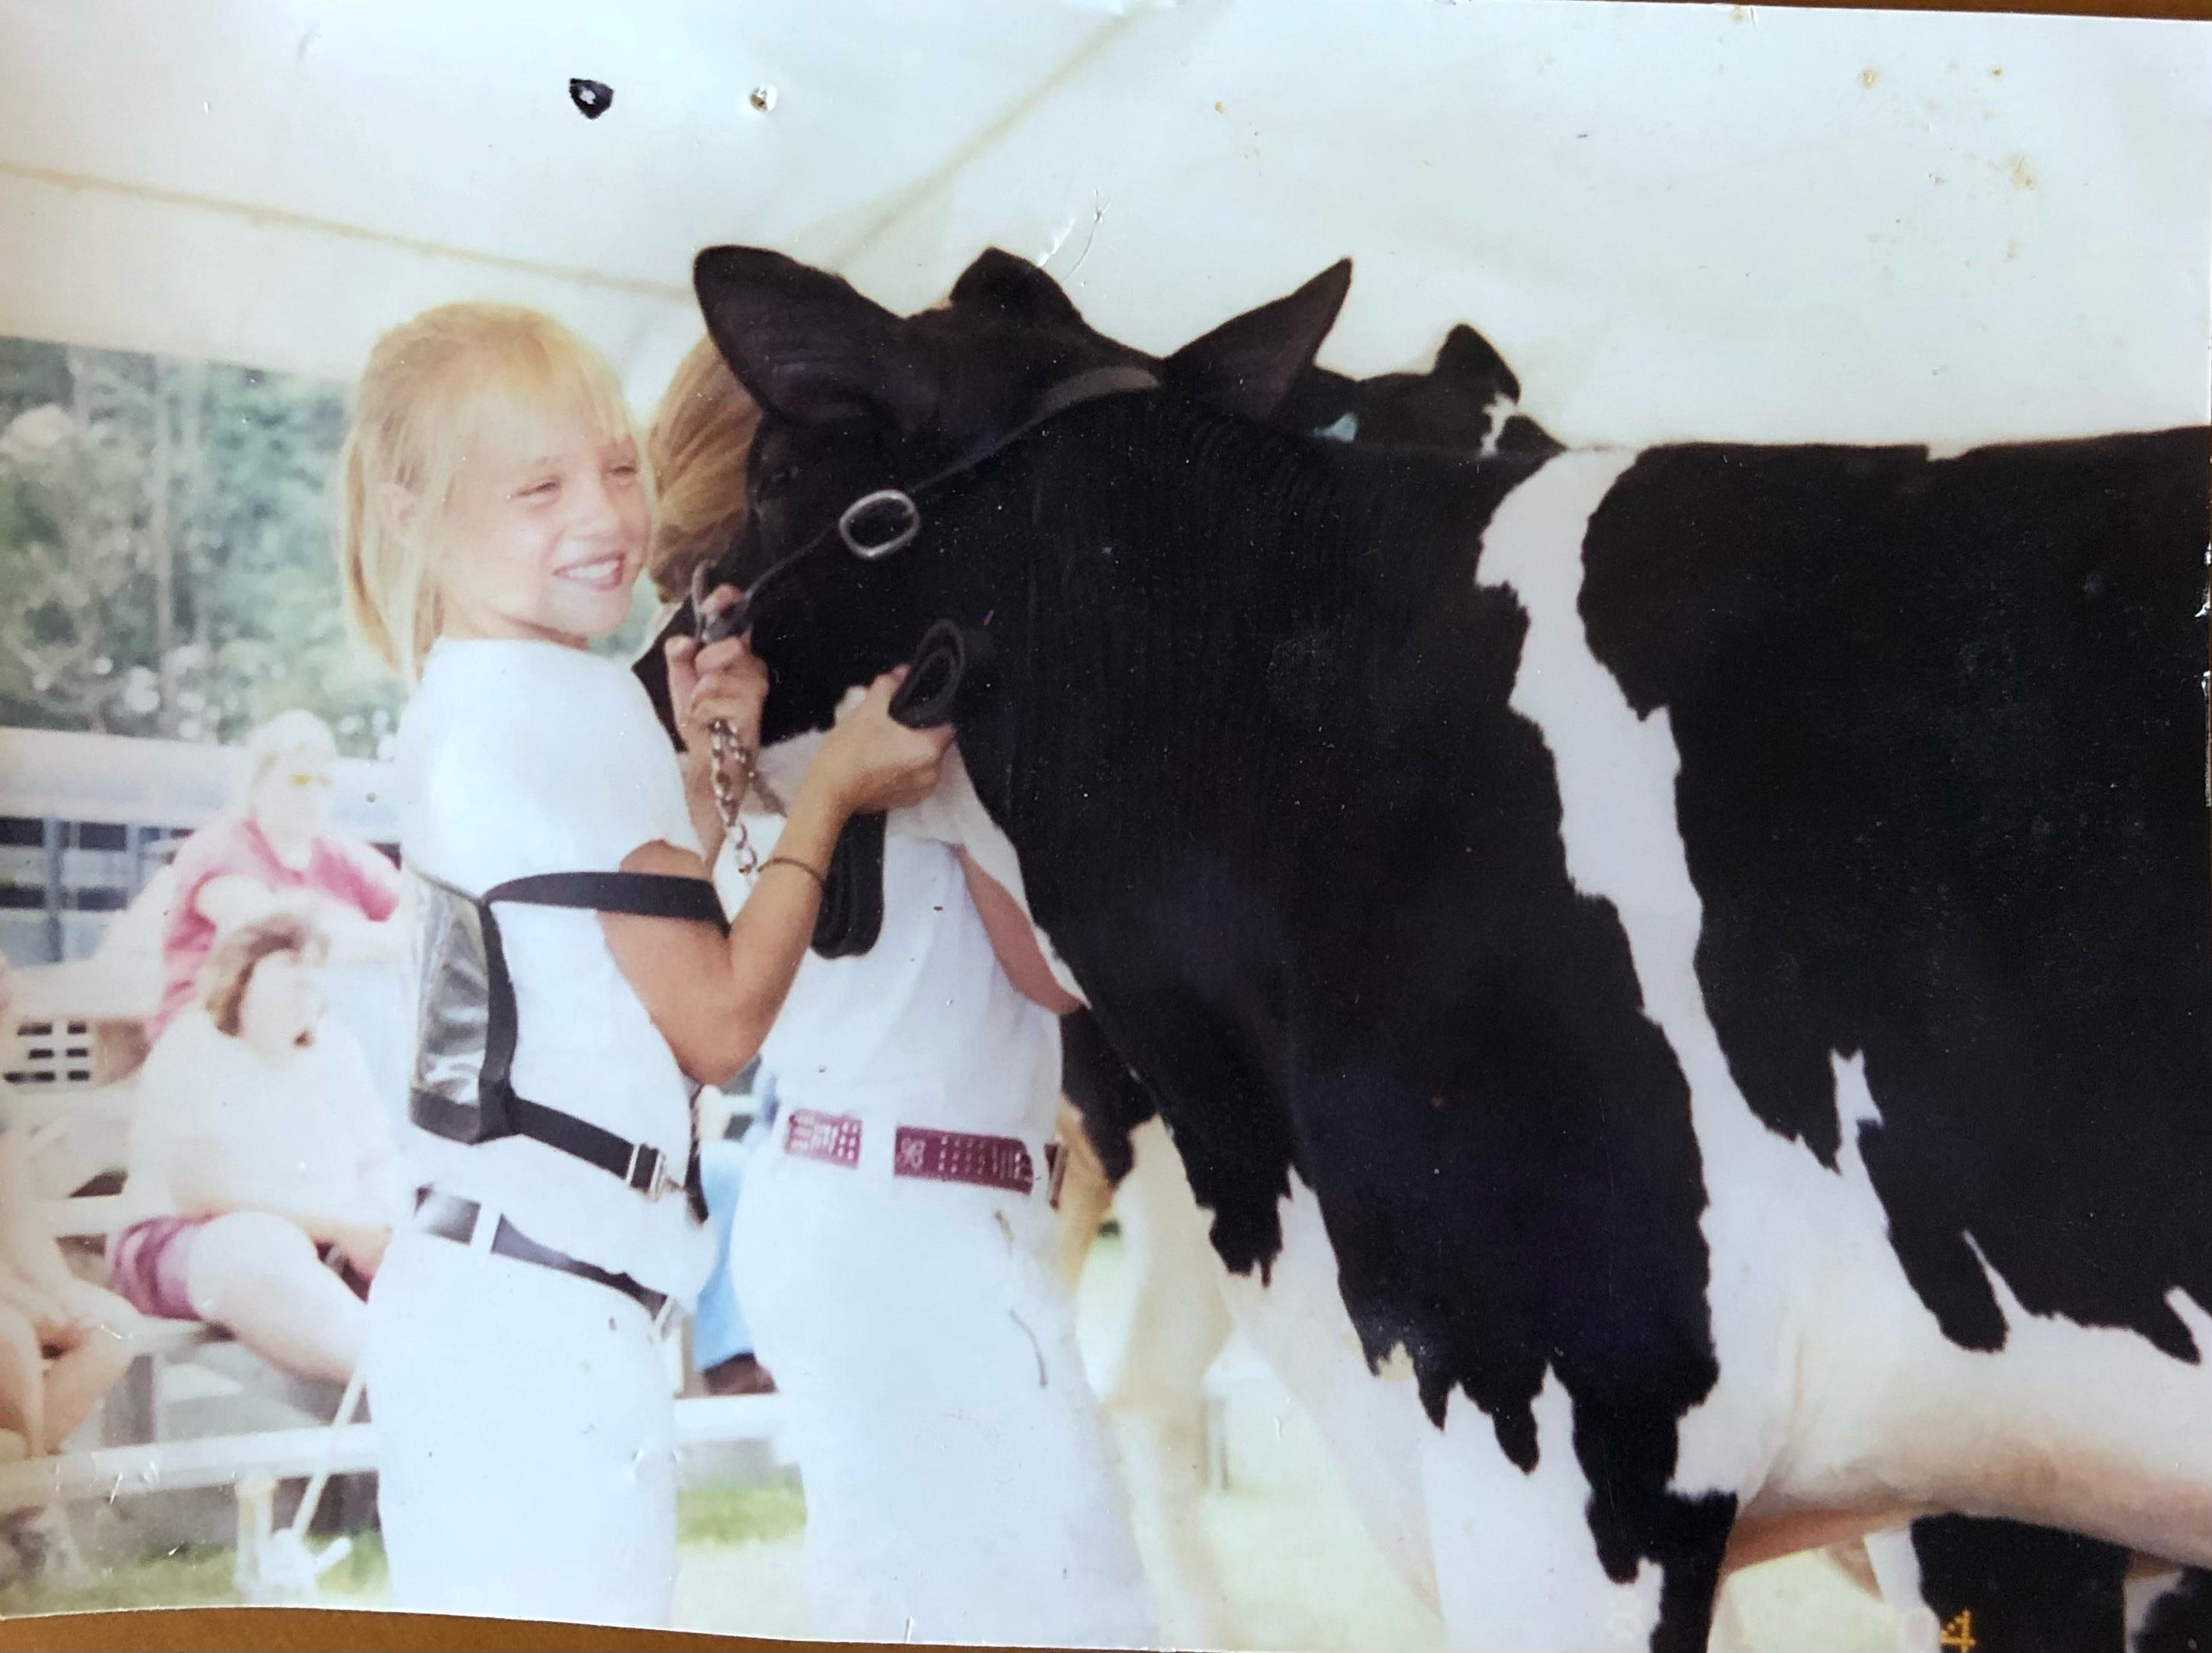 Before the track meets and Summer 2020 Olympics run, Elle Purrier St. Pierre would compete in 4H livestock showings.